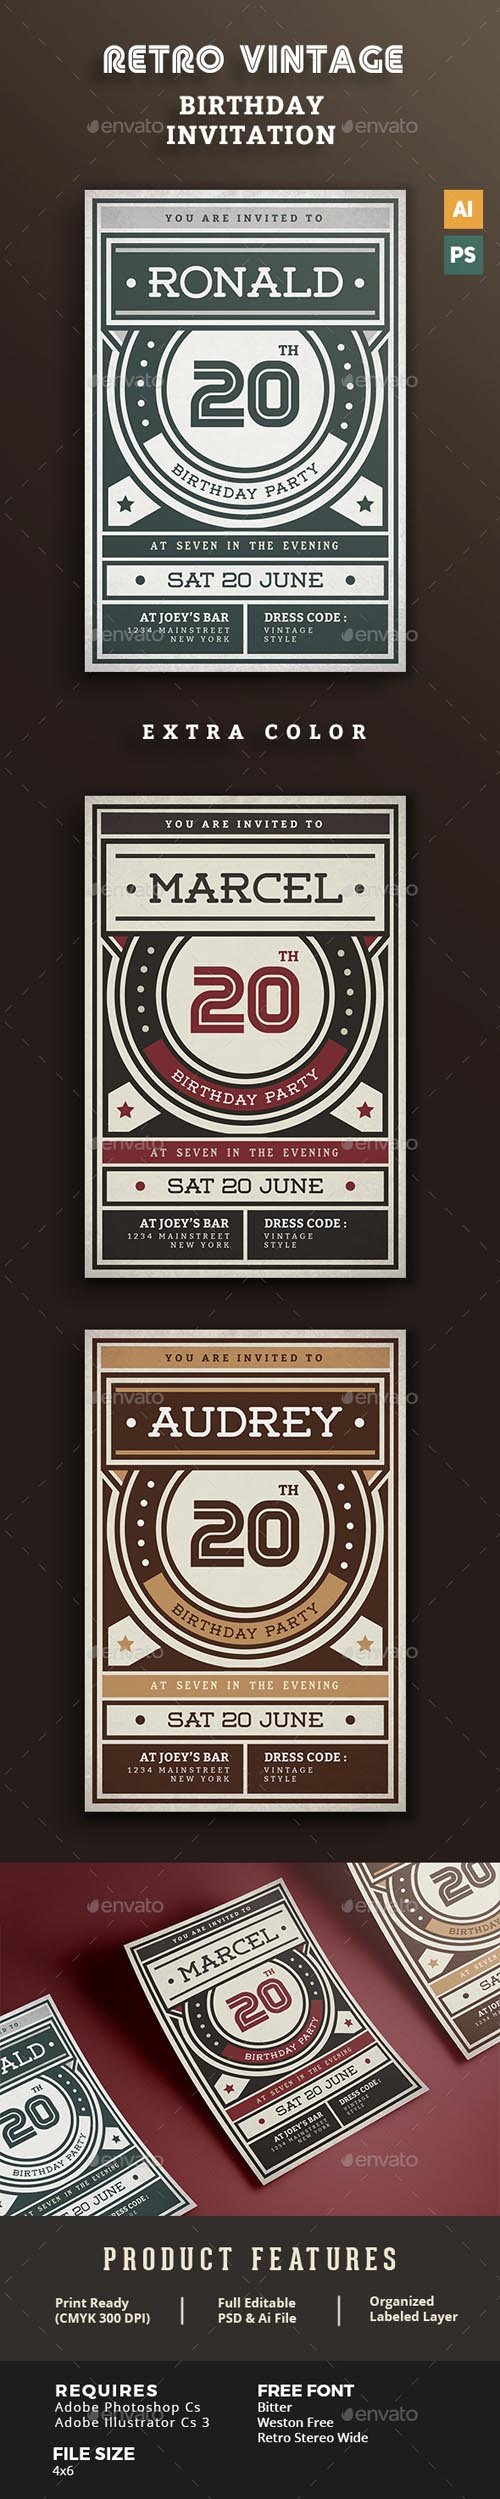 GR - Birthday Retro/Vintage Invitation 15816186